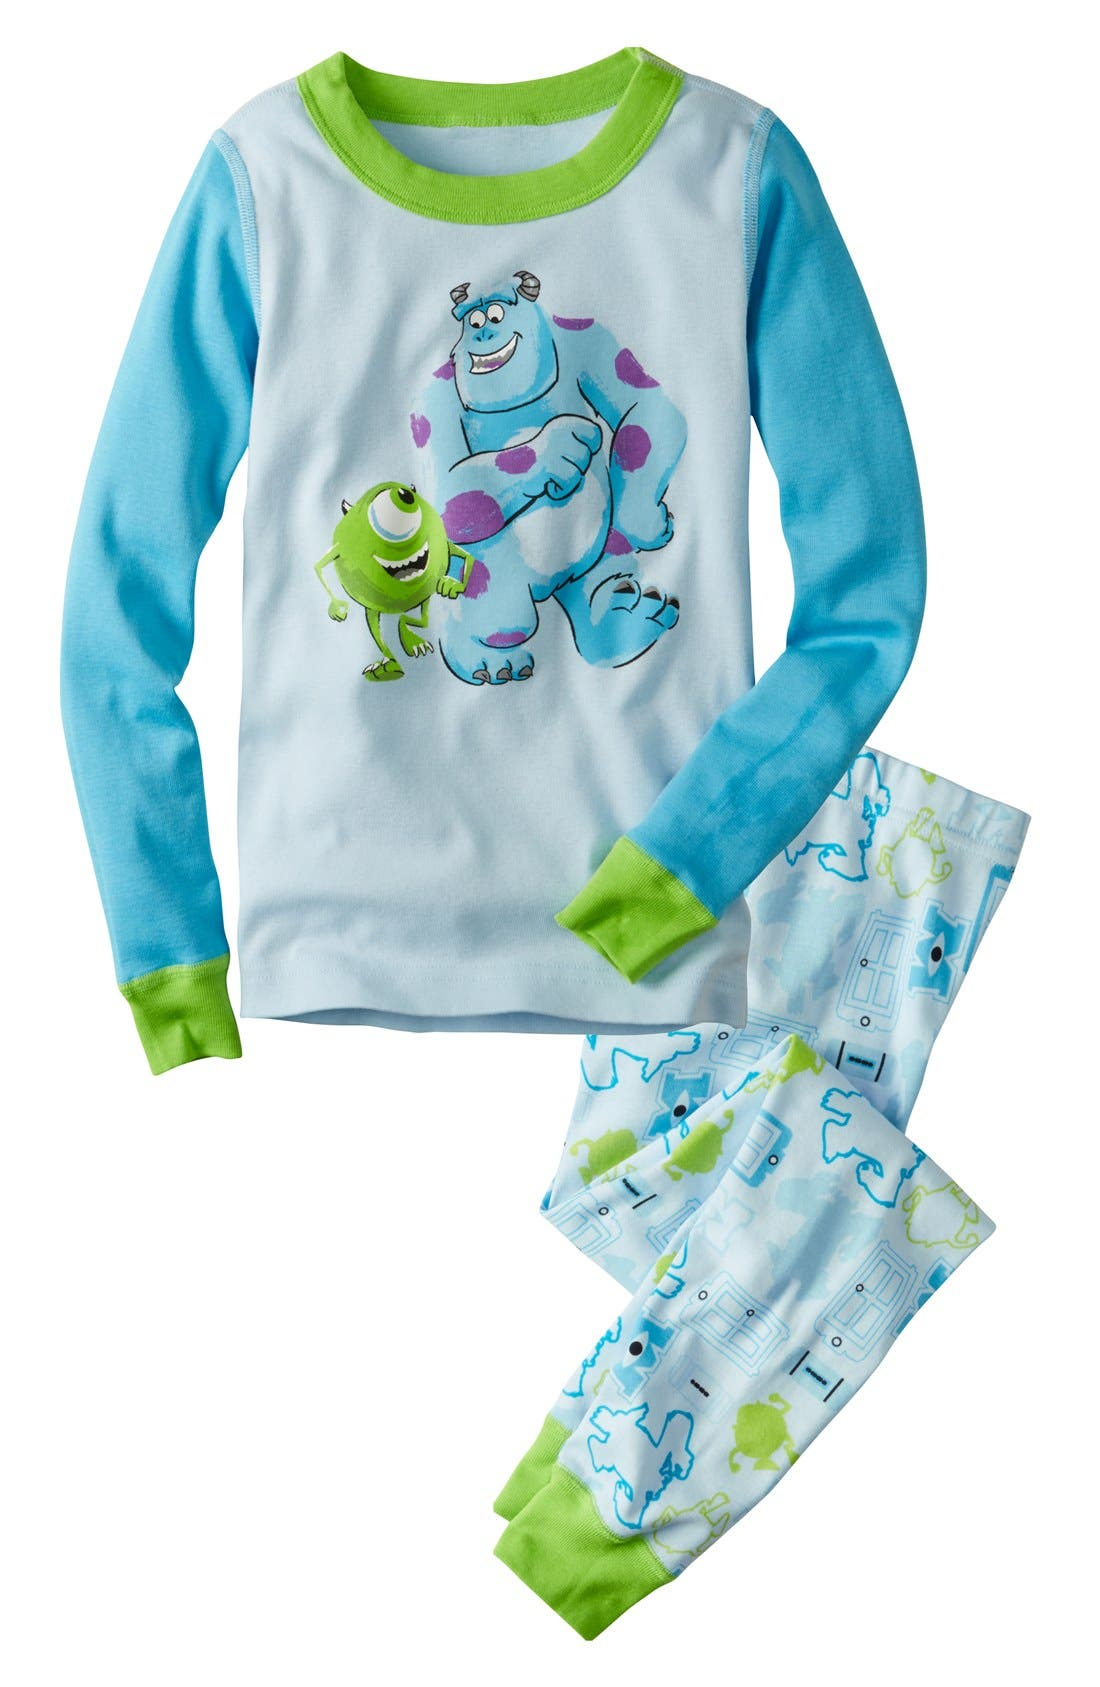 Alternate Image 1 Selected - Hanna Andersson 'Monsters Inc.™' Two-Piece Organic Cotton Fitted Pajamas (Toddler Boys & Little Boys)